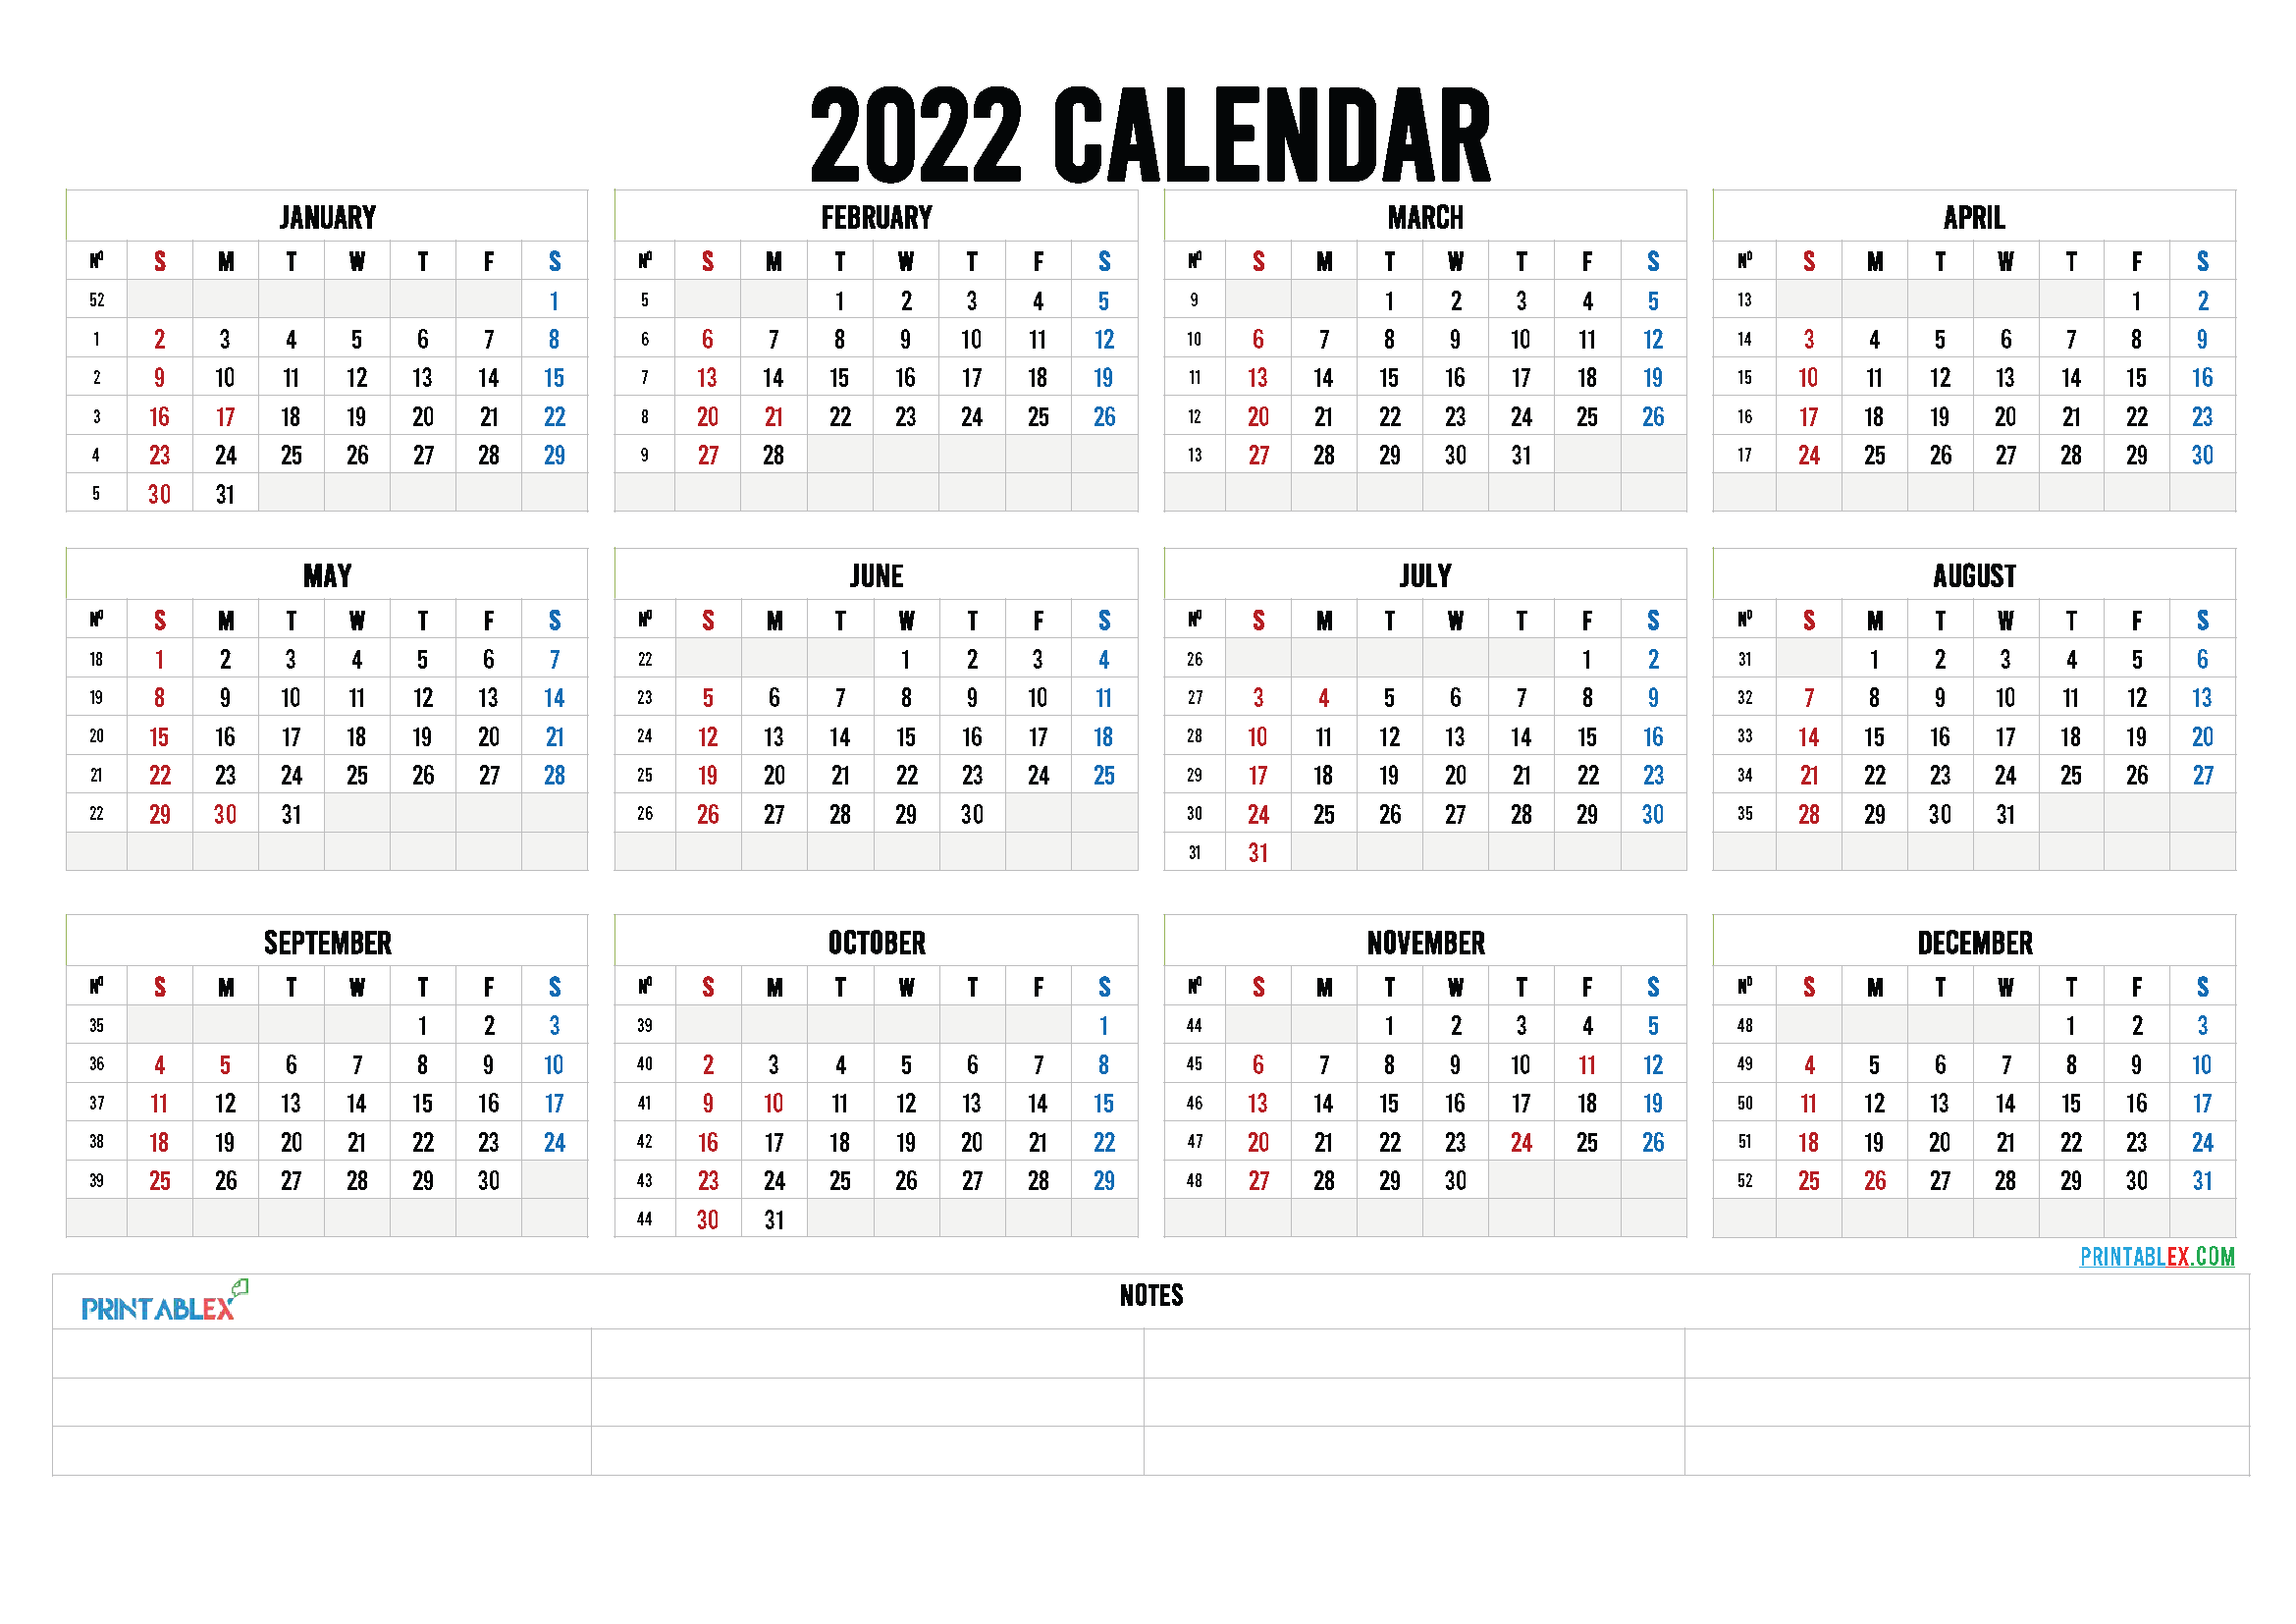 Free Printable 2022 Calendar by Year (Font: kirsty)